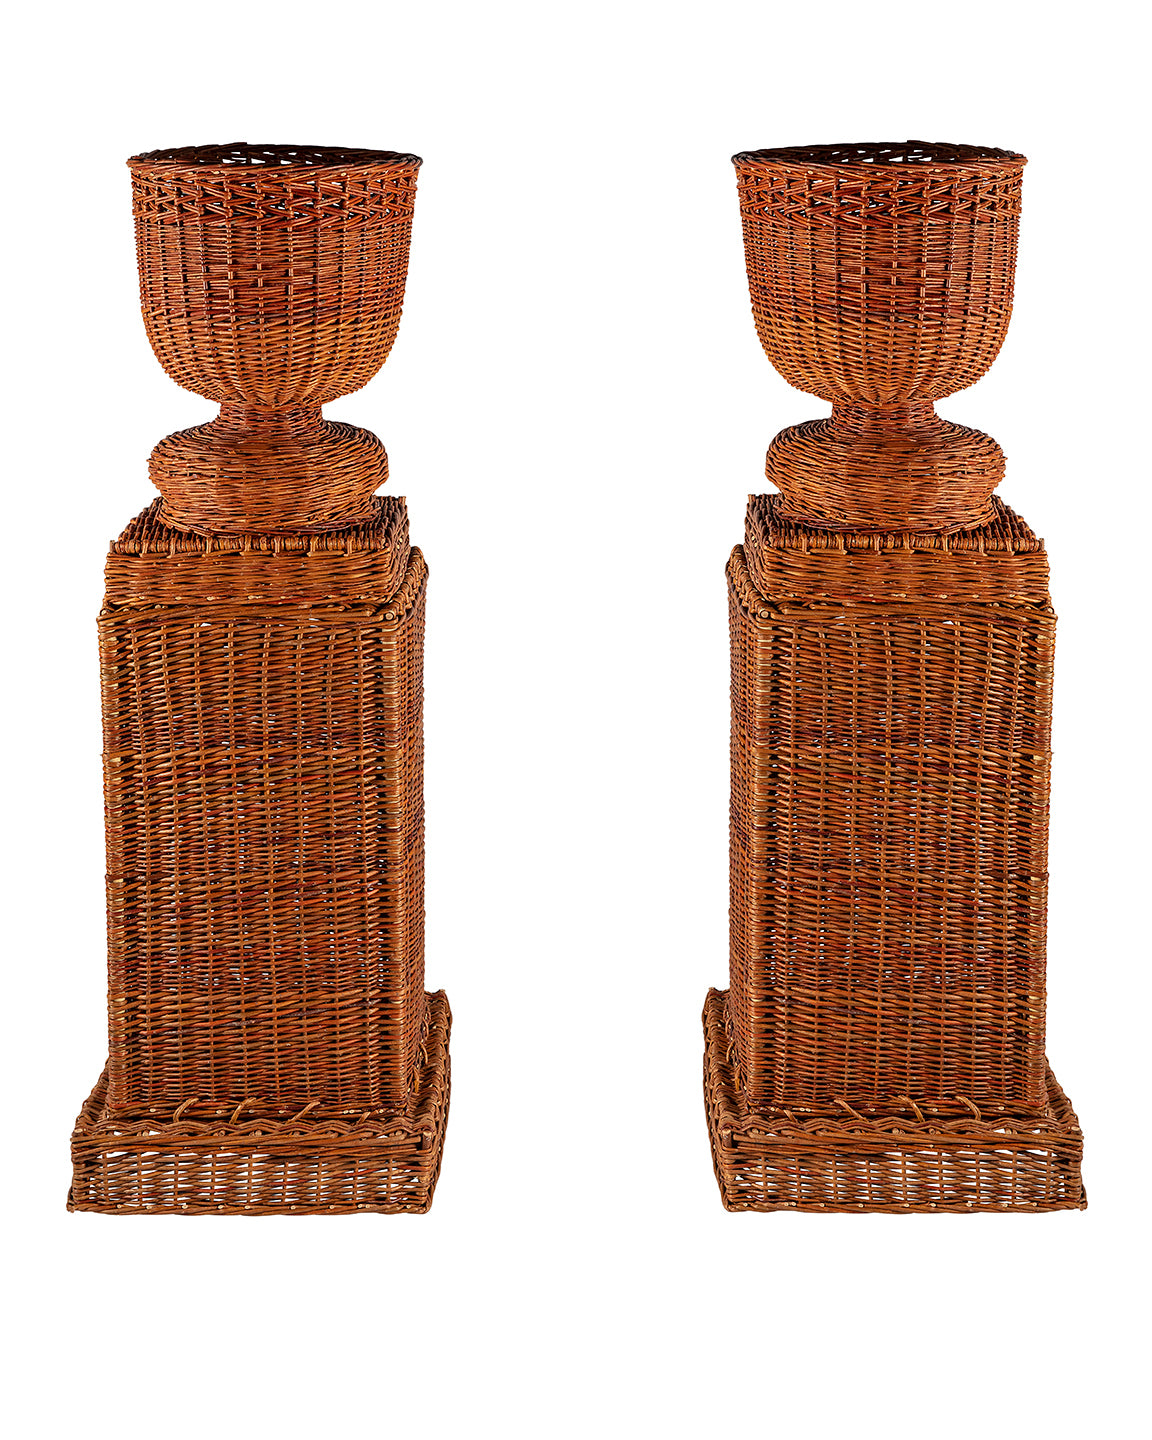 Wicker vases and plinths